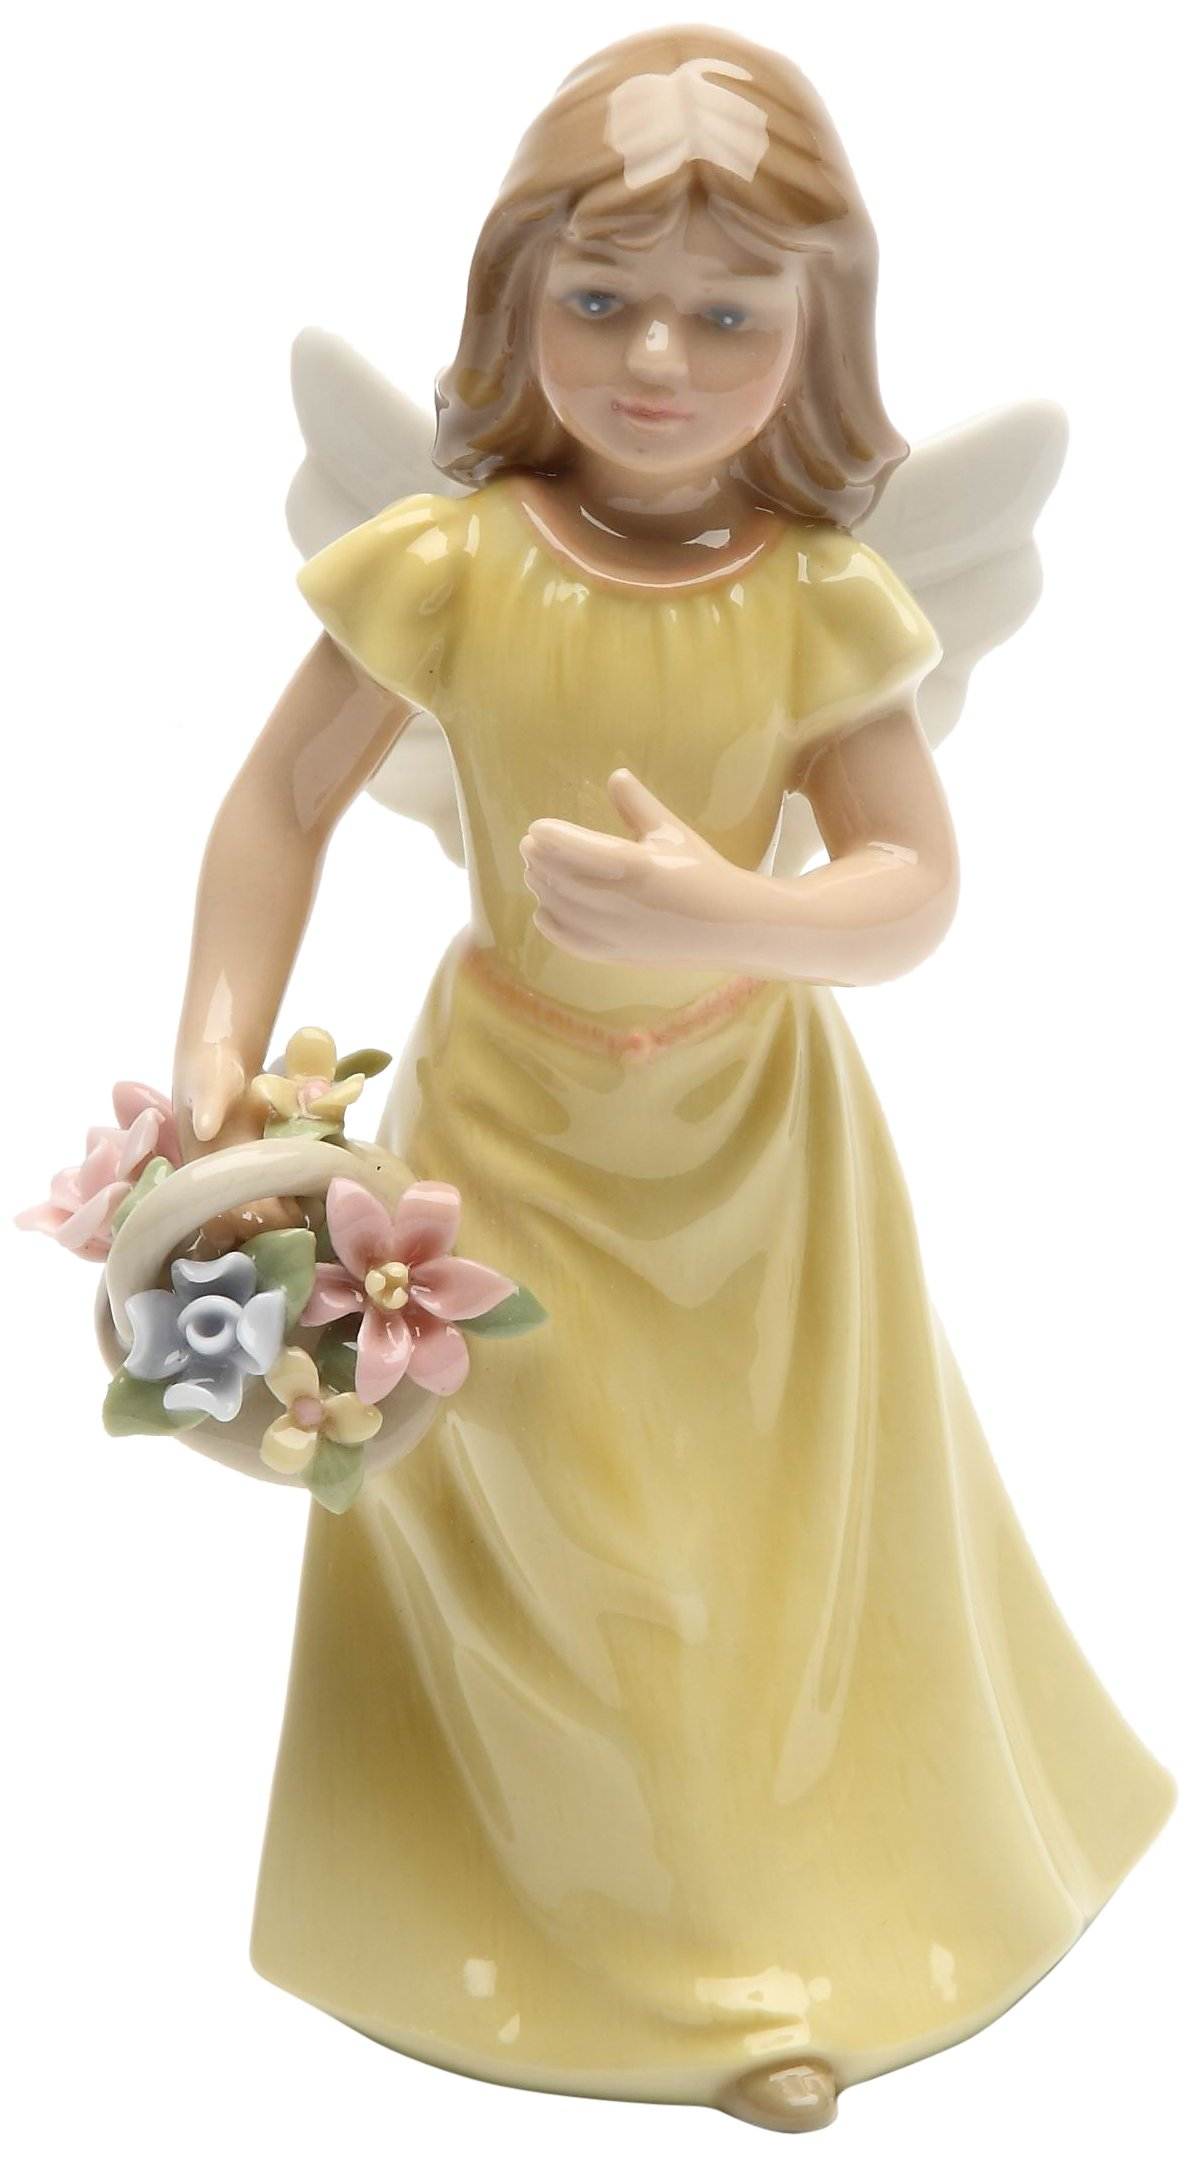 Cosmos Gifts 20862 Angel in Yellow Dress Holding Flowers Ceramic Figurine, 5-3/8-Inch